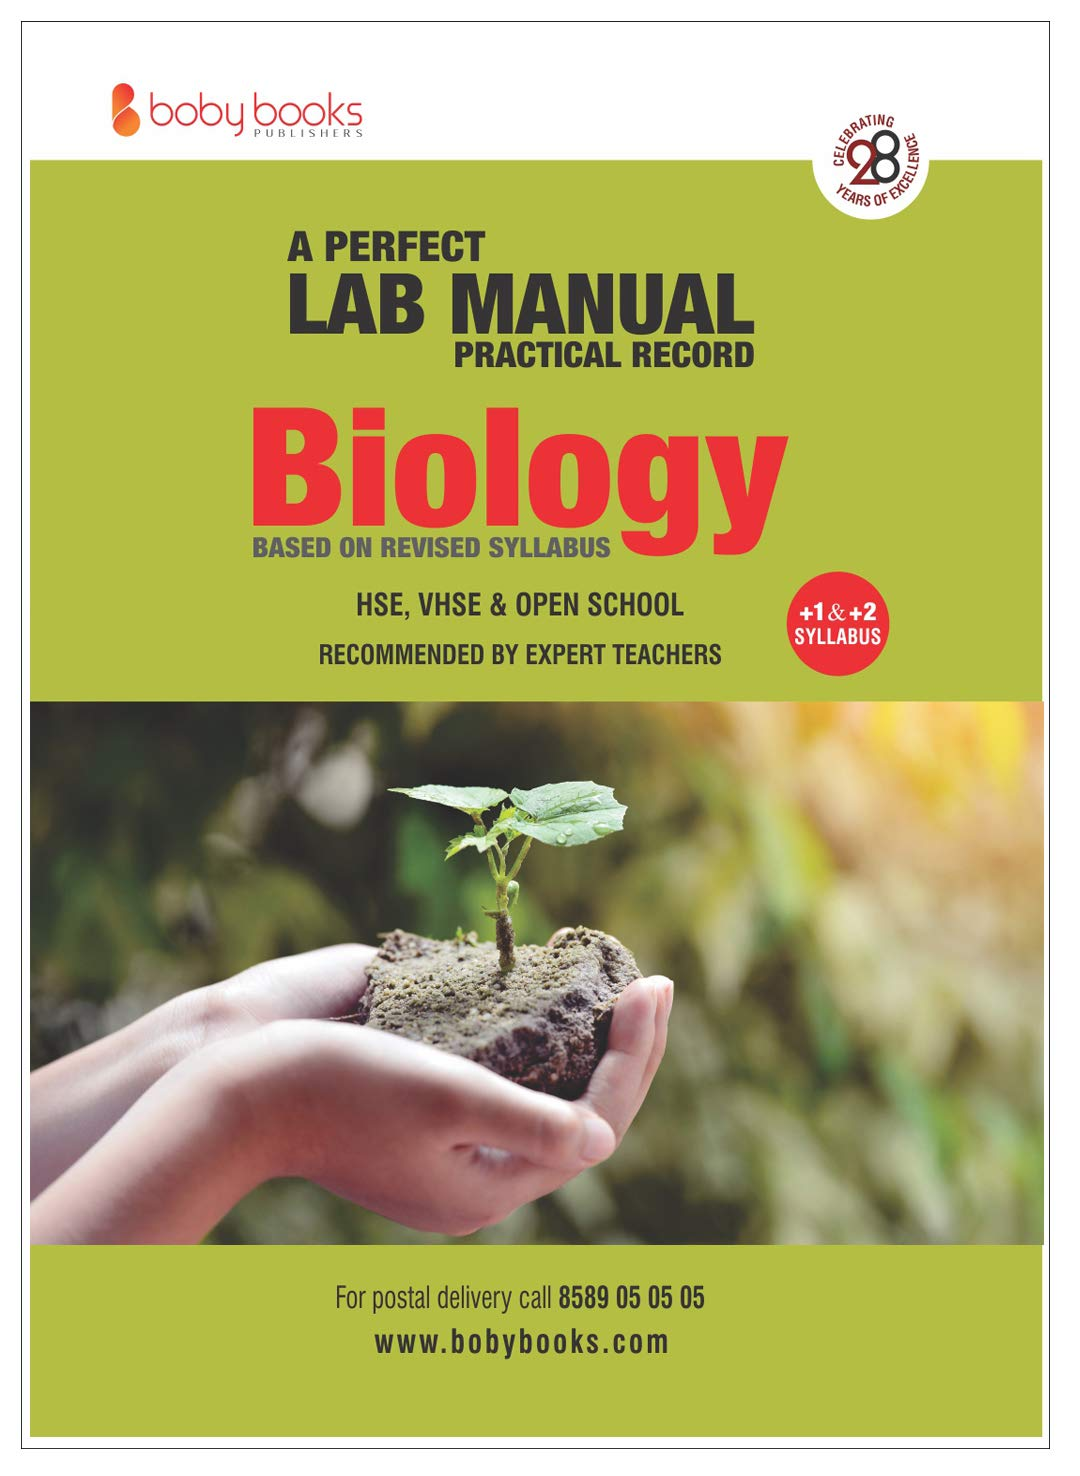 Lab Manual Plus One, Plus Two / Class 11, Class 12 Biology Boby Books ( KERALA SYLLABUS) Paperback Bunko – 2018